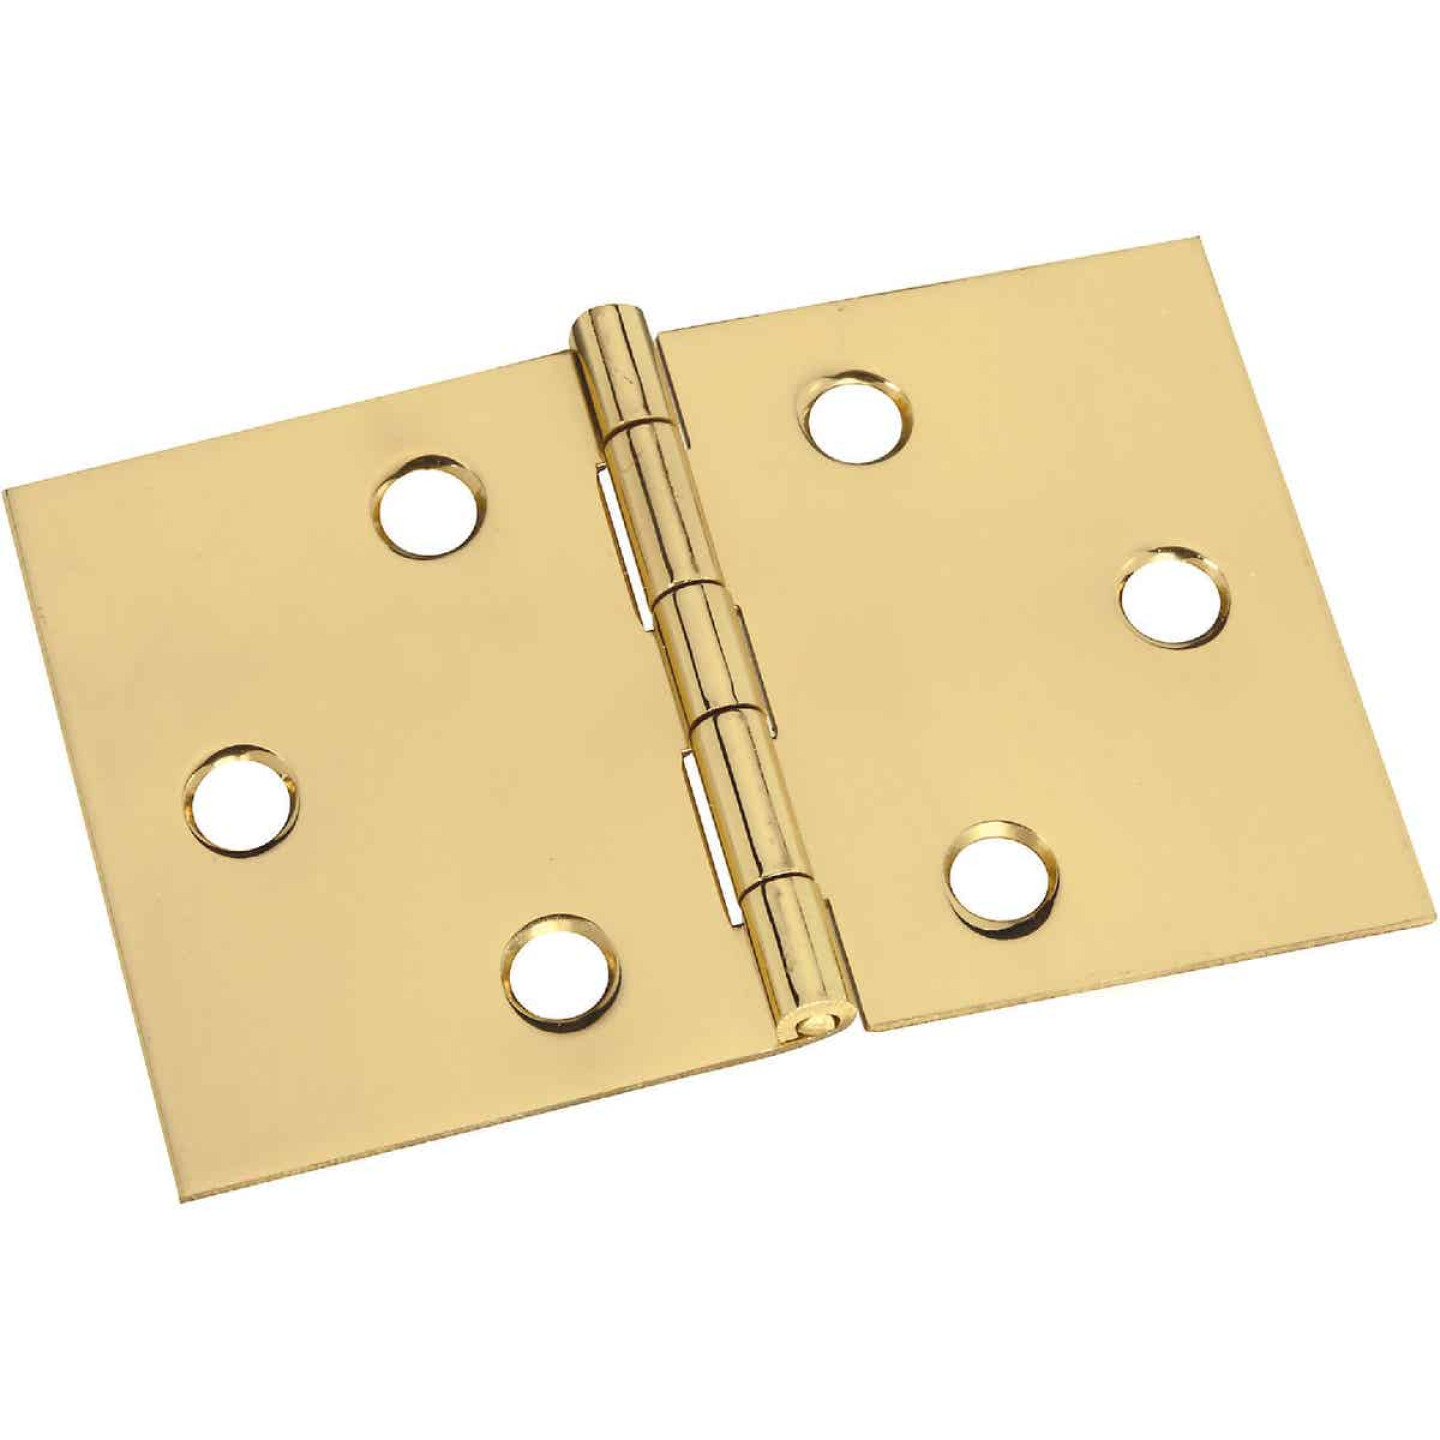 National 2 In. x 3-1/16 In. Brass Desk Hinge (2-Pack) Image 1